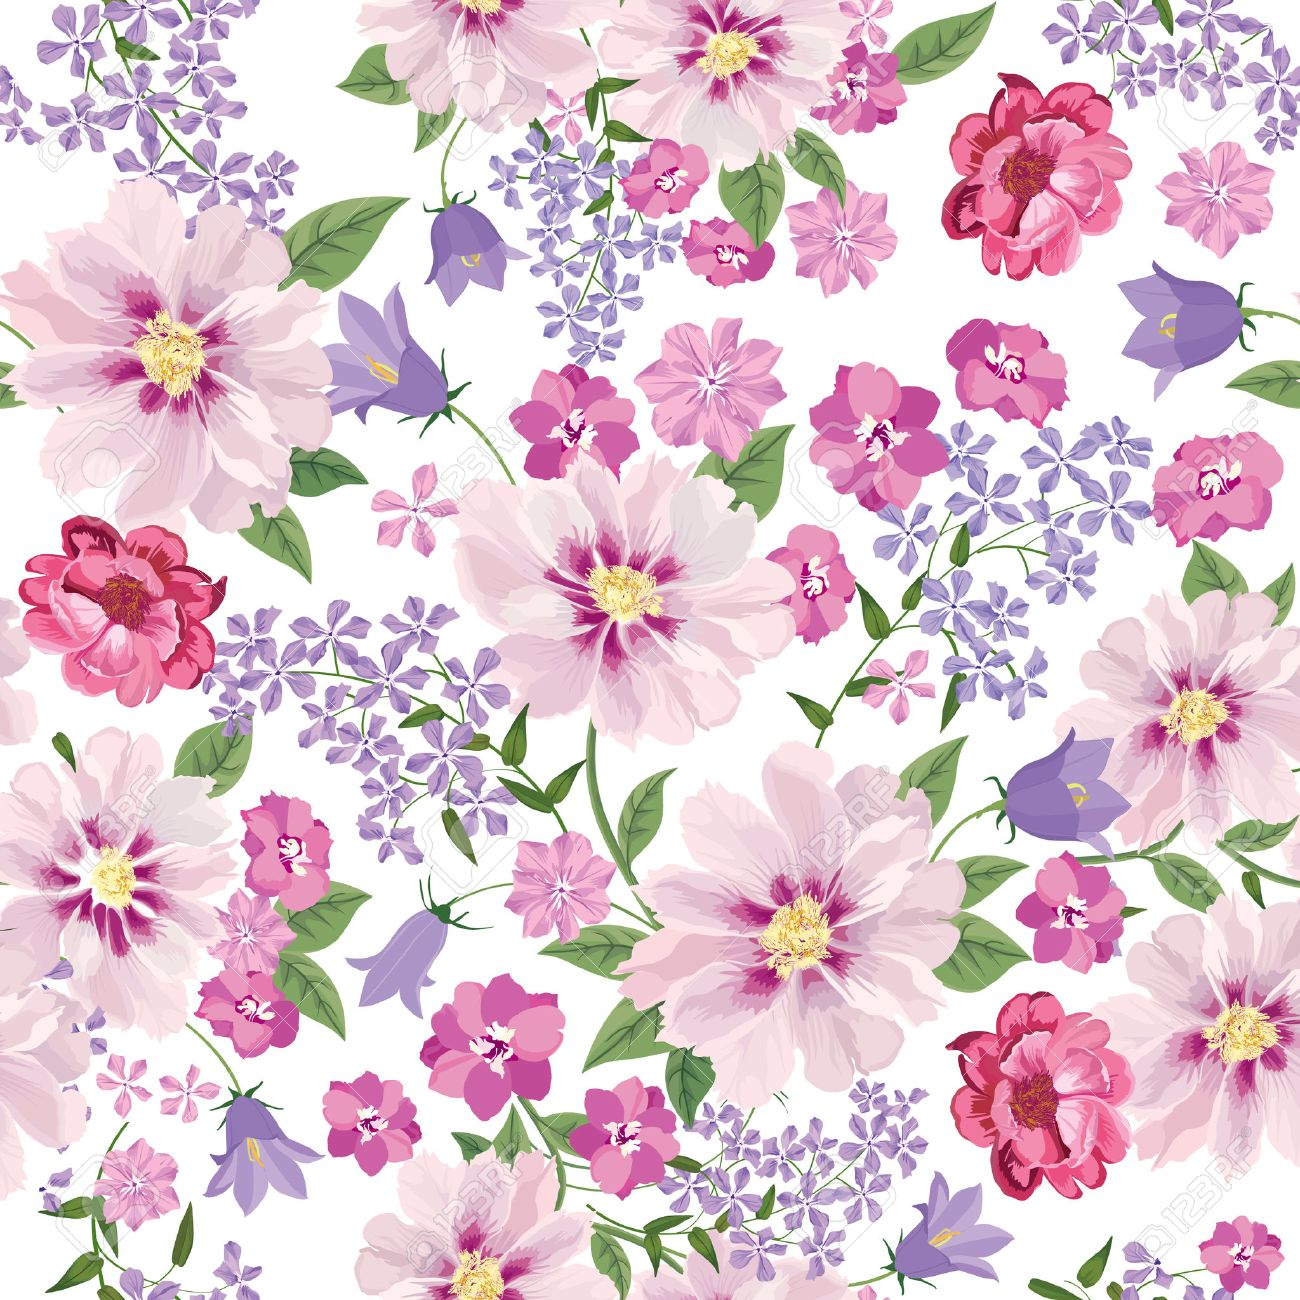 floral seamless pattern flower background floral tile spring